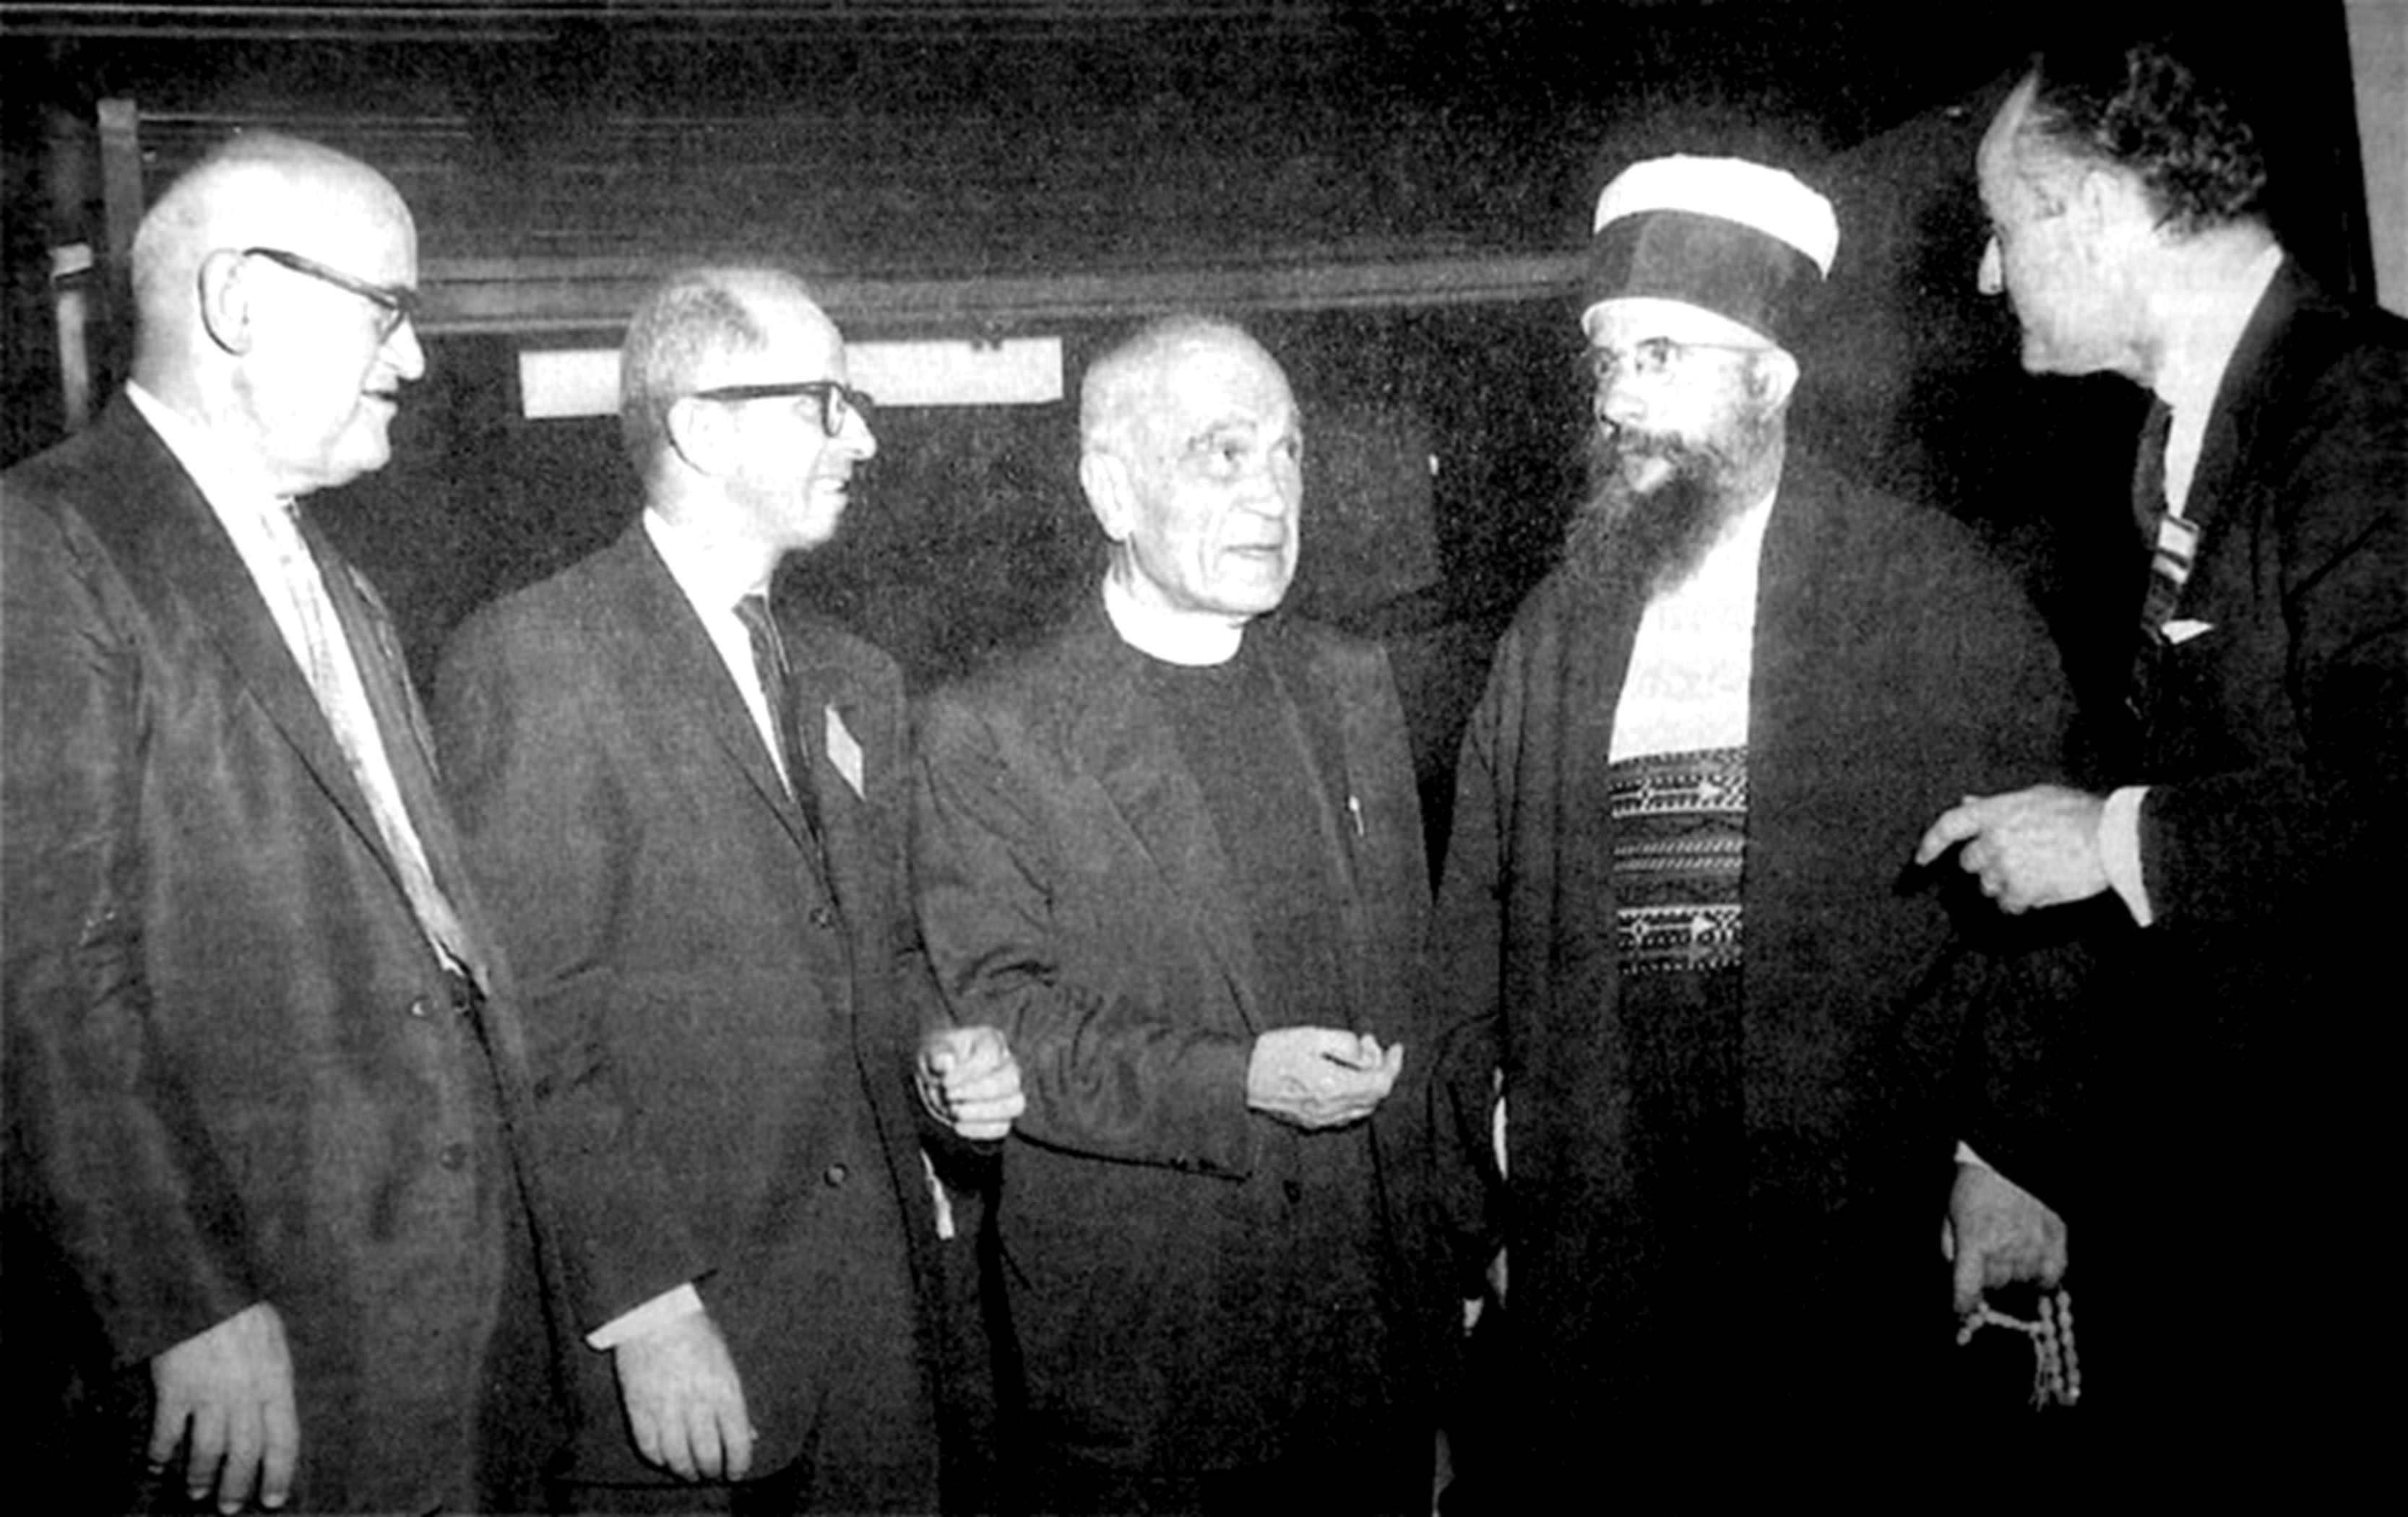 Kristo Thanas, Imam Vehbi Ismaili, Fan Noli, Baba Rexhebi, Anthony Athanas, Boston 1959